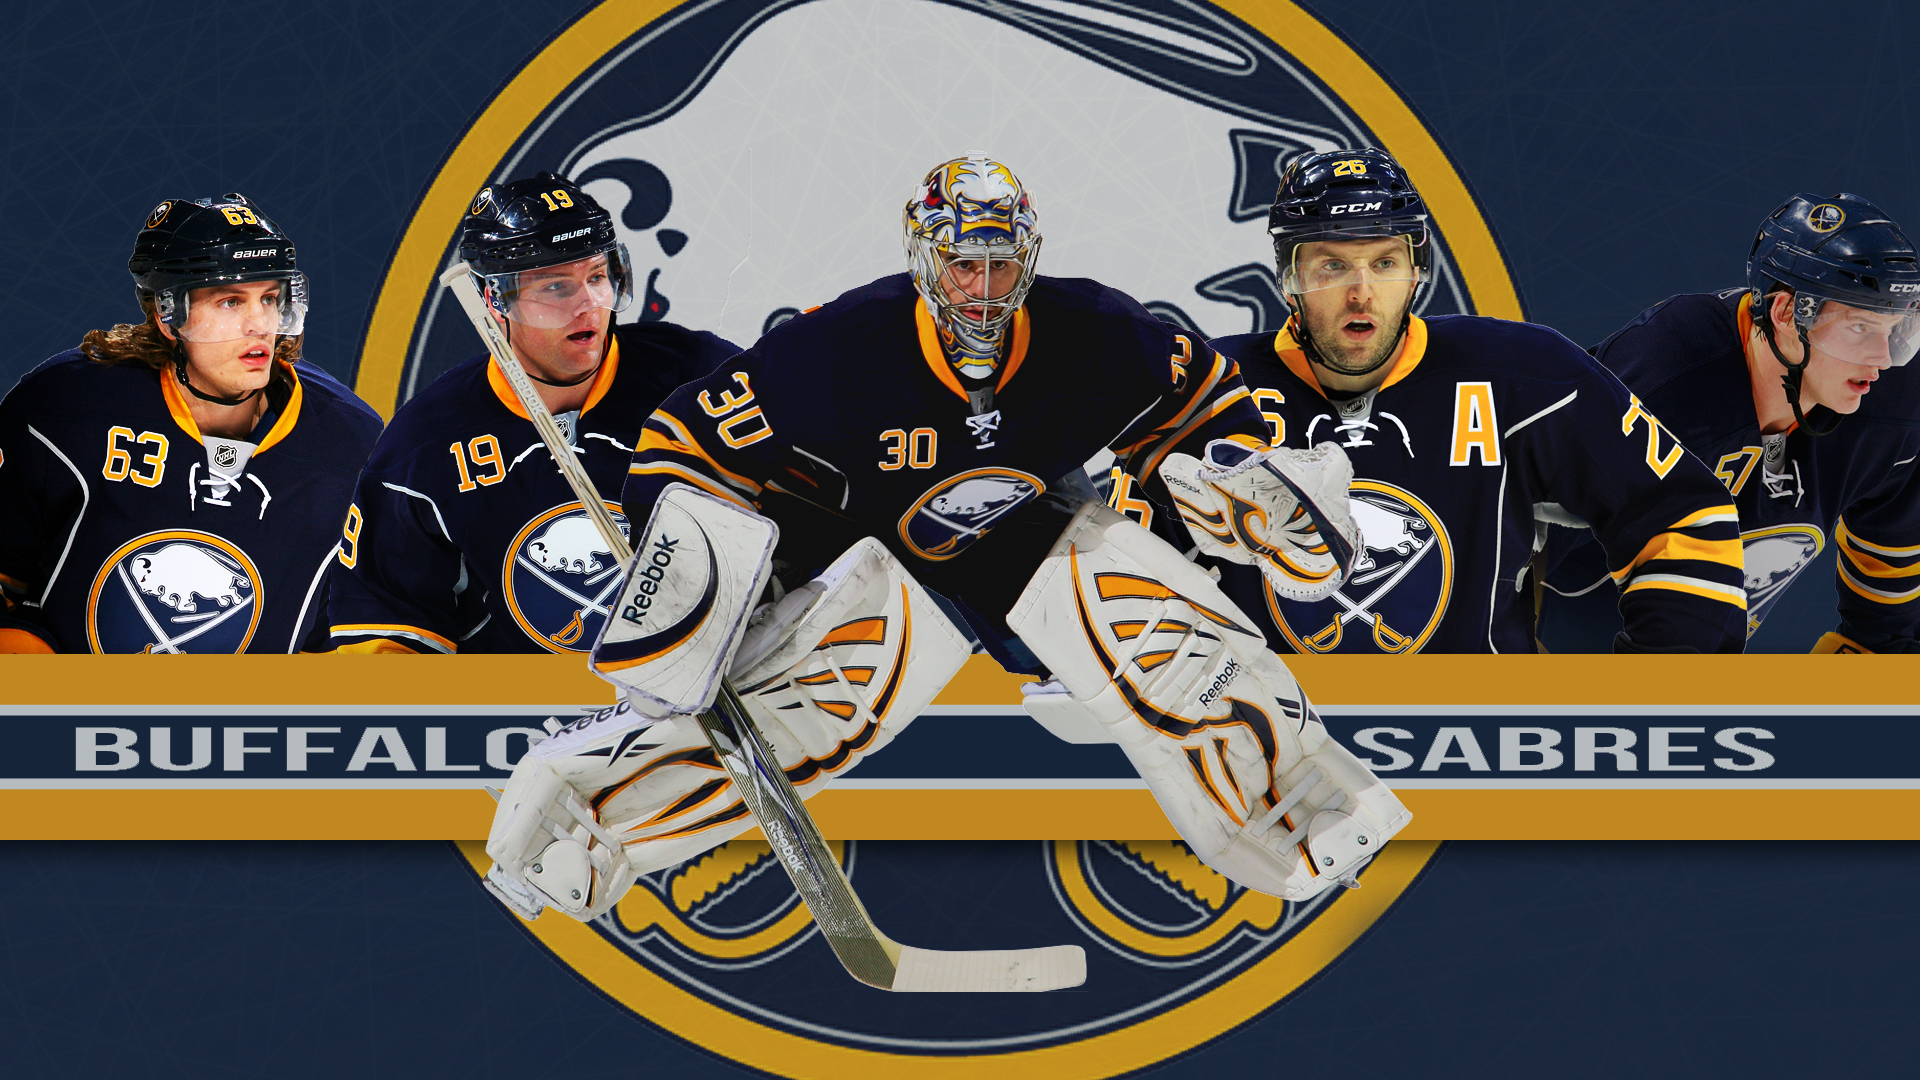 Buffalo Sabres Wallpapers 1080p G9ES329   4USkY 1920x1080